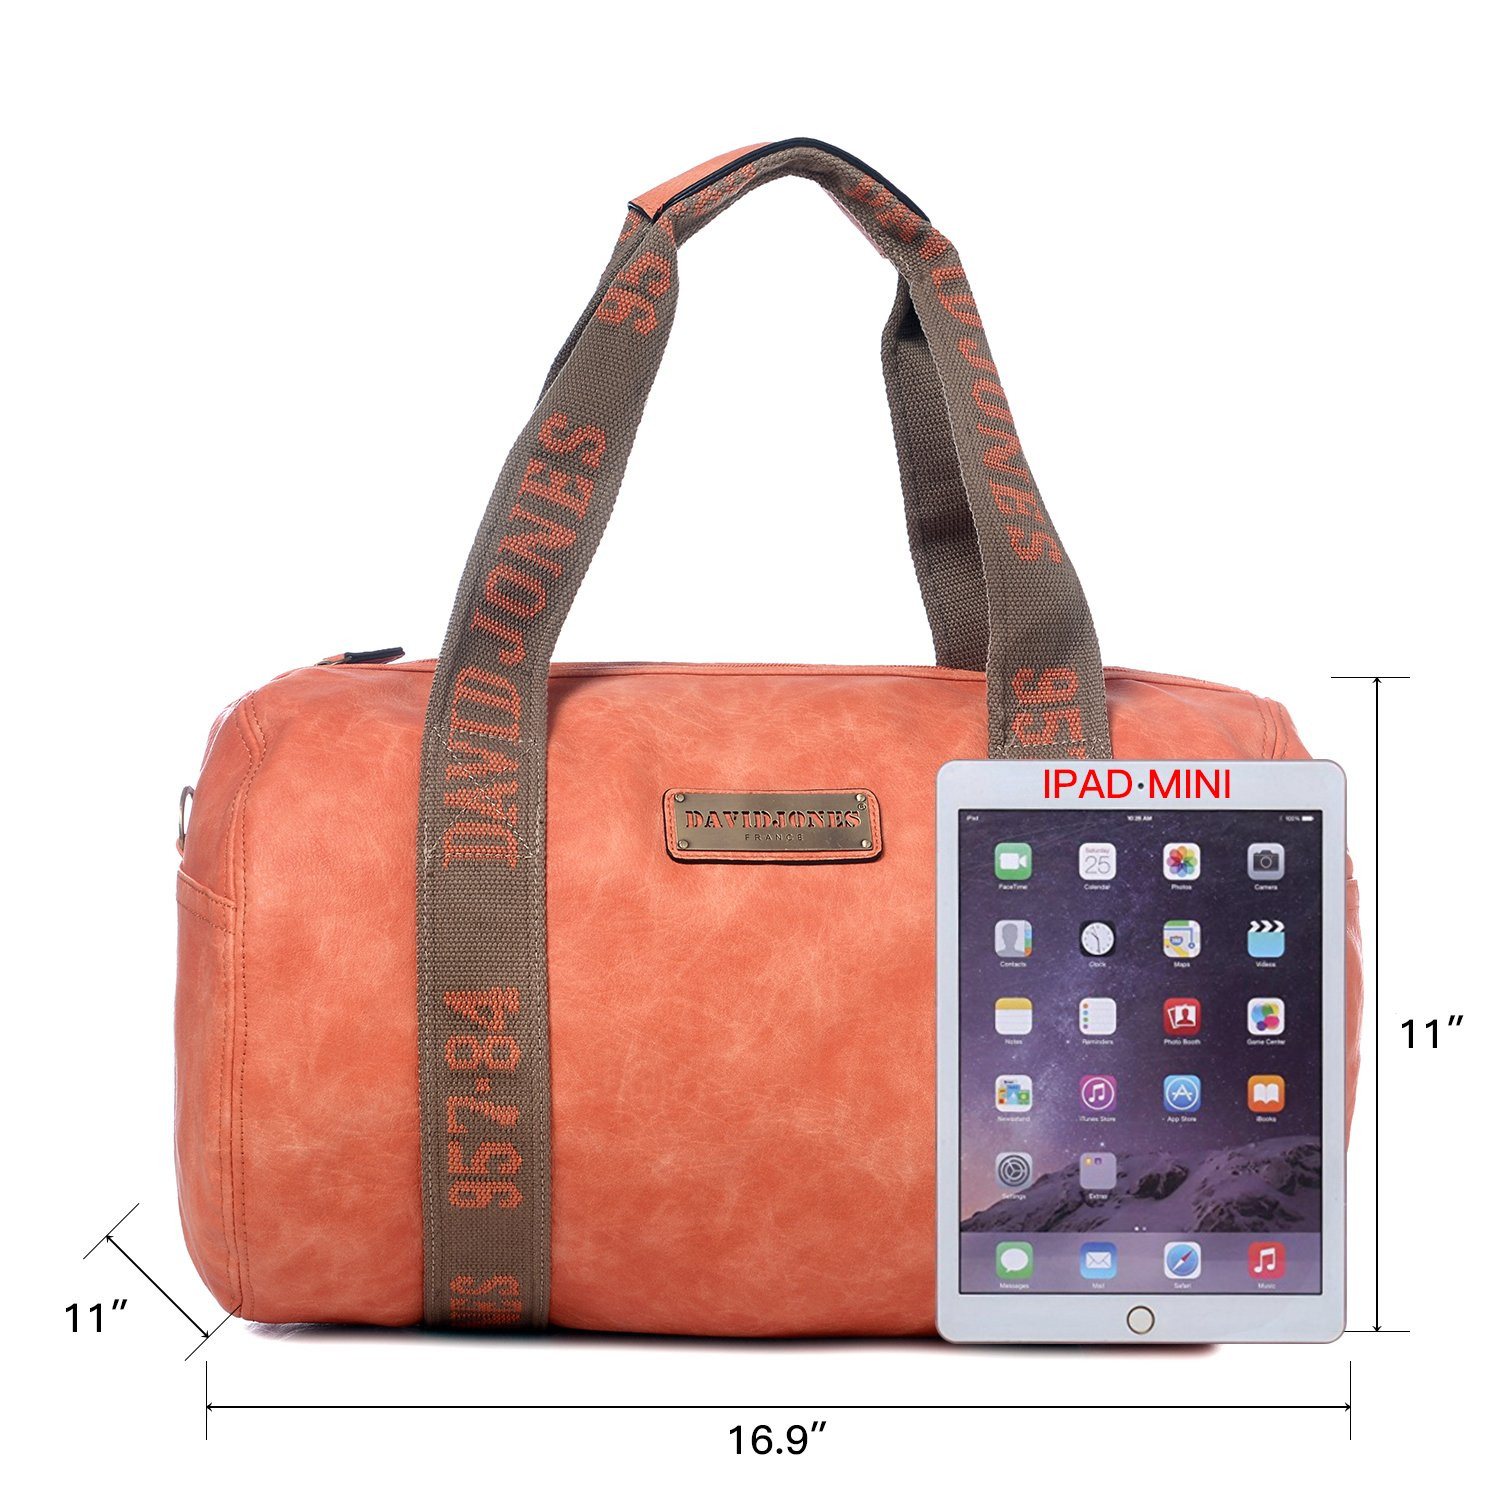 cddbe02d5e Duffle Travel Bags for Woman Weekender Tote Faux Leather Carry on Gym Bags  for Man Unisex DAVID JONES - ORANGE  Amazon.in  Bags